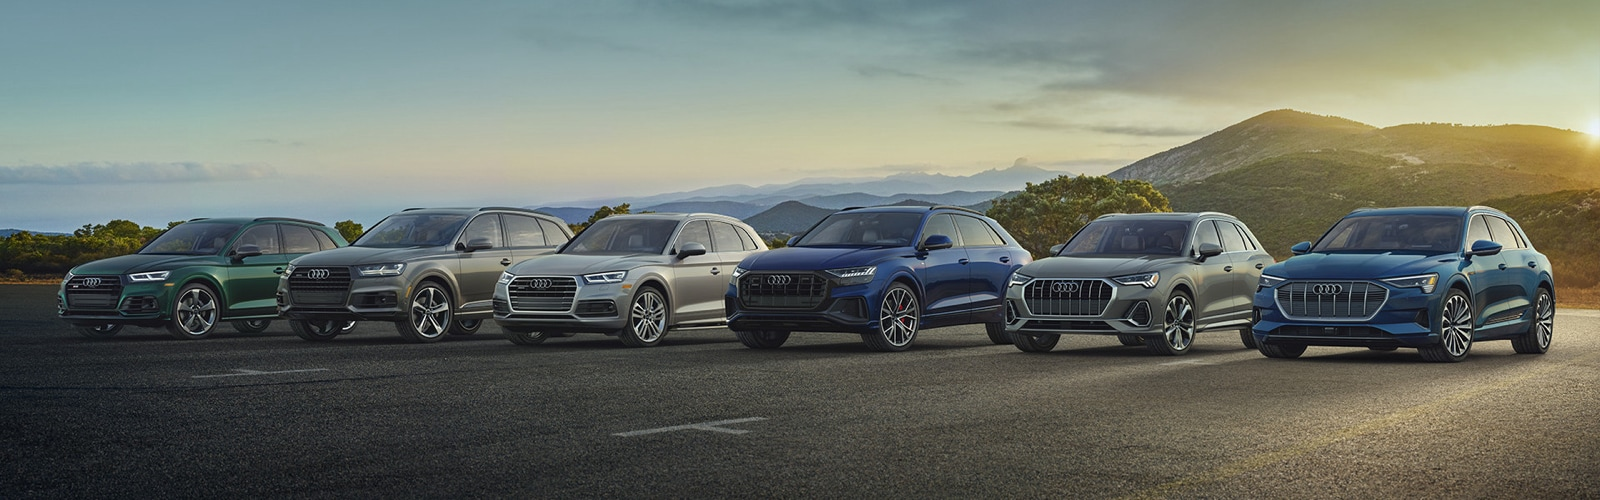 Audi lease deals in Westchester, NY image